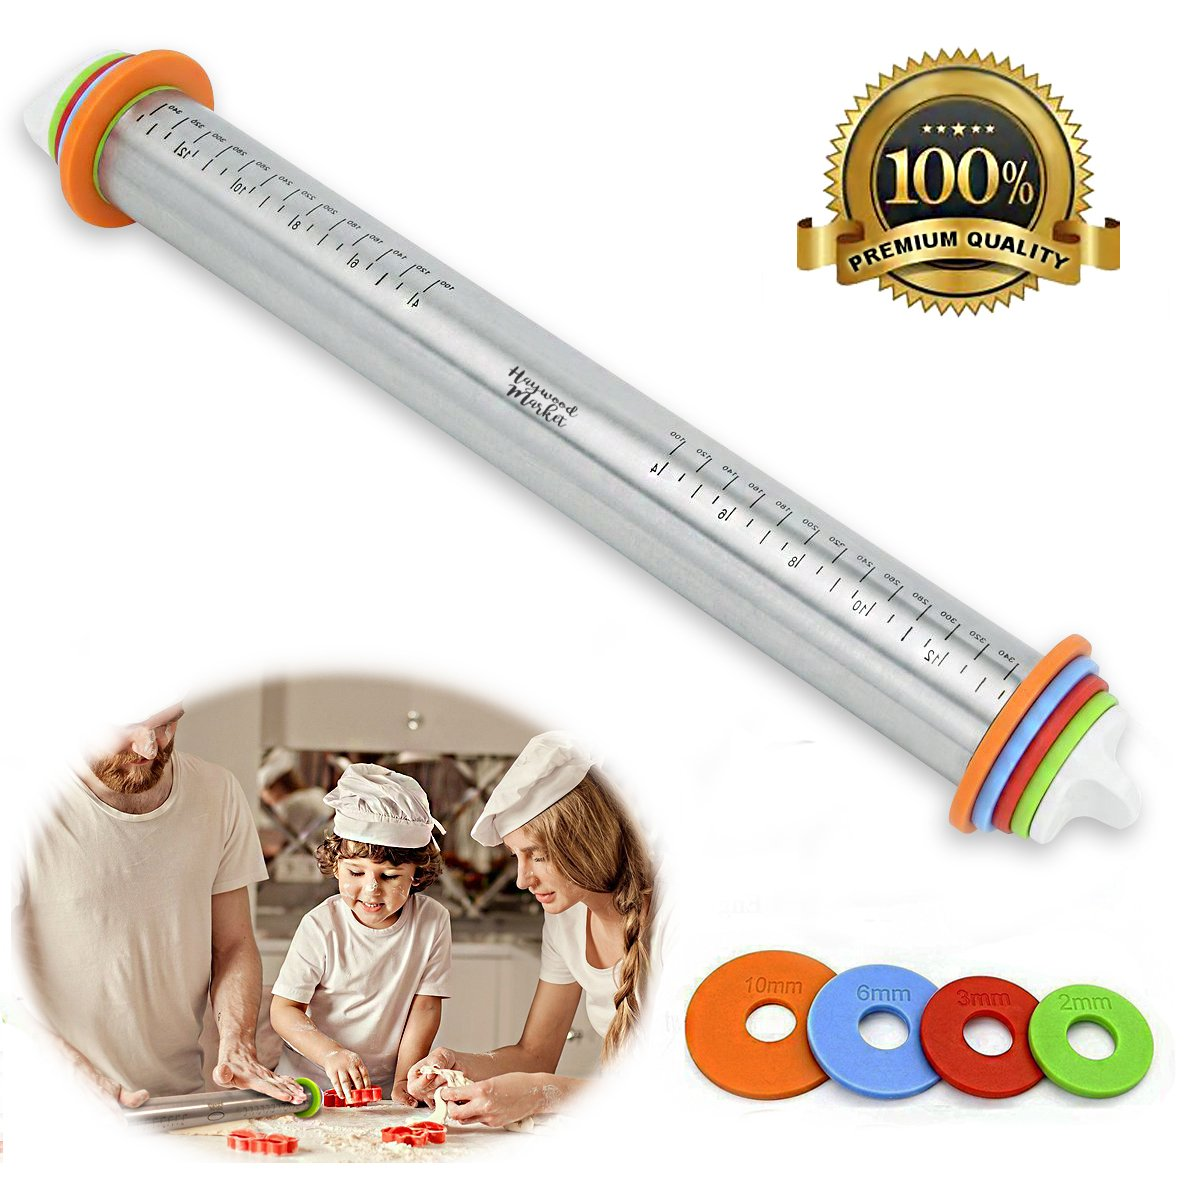 Adjustable Rolling Pin with Thickness Rings Guides - 17 inch Large Heavy Duty Stainless Steel French Style Dough Roller for Baking Pizza Pie Pastries and Cookies